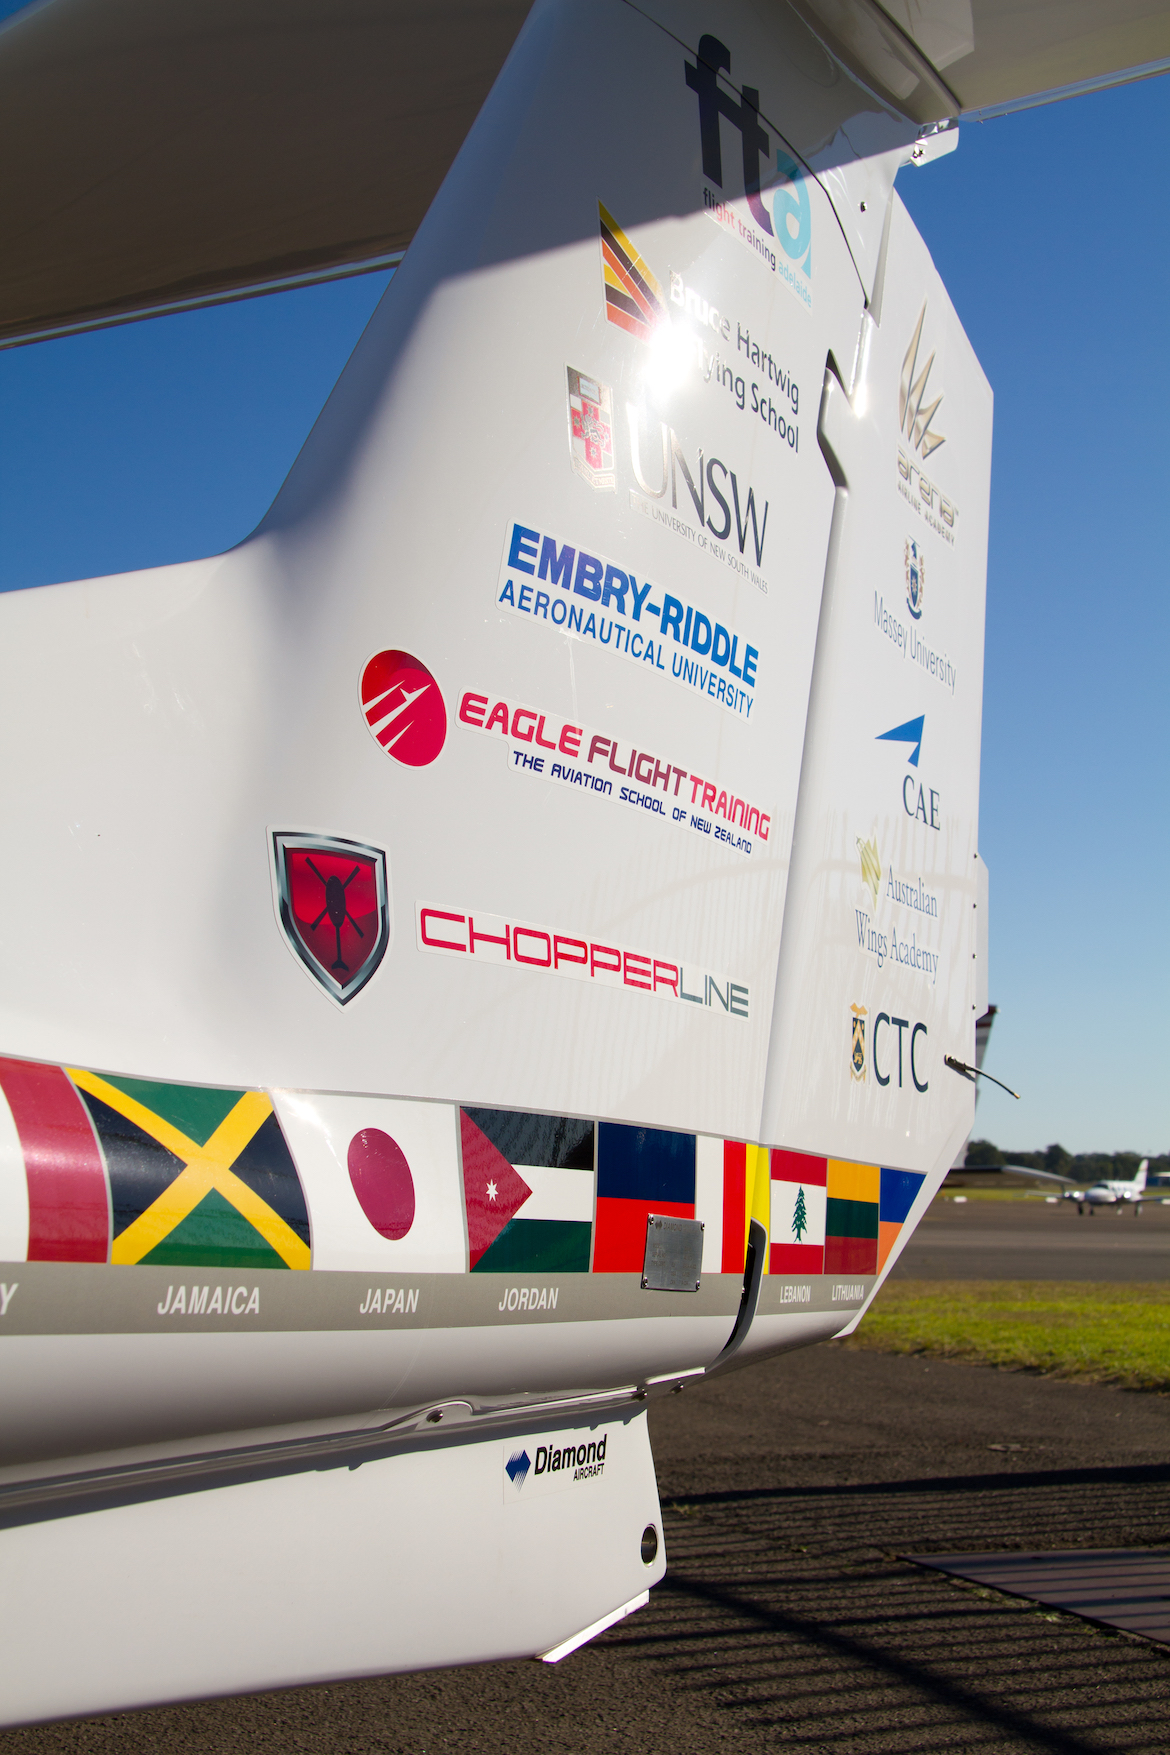 The DA40 XLT has the names flight training institutions on the fin. (Seth Jaworski)